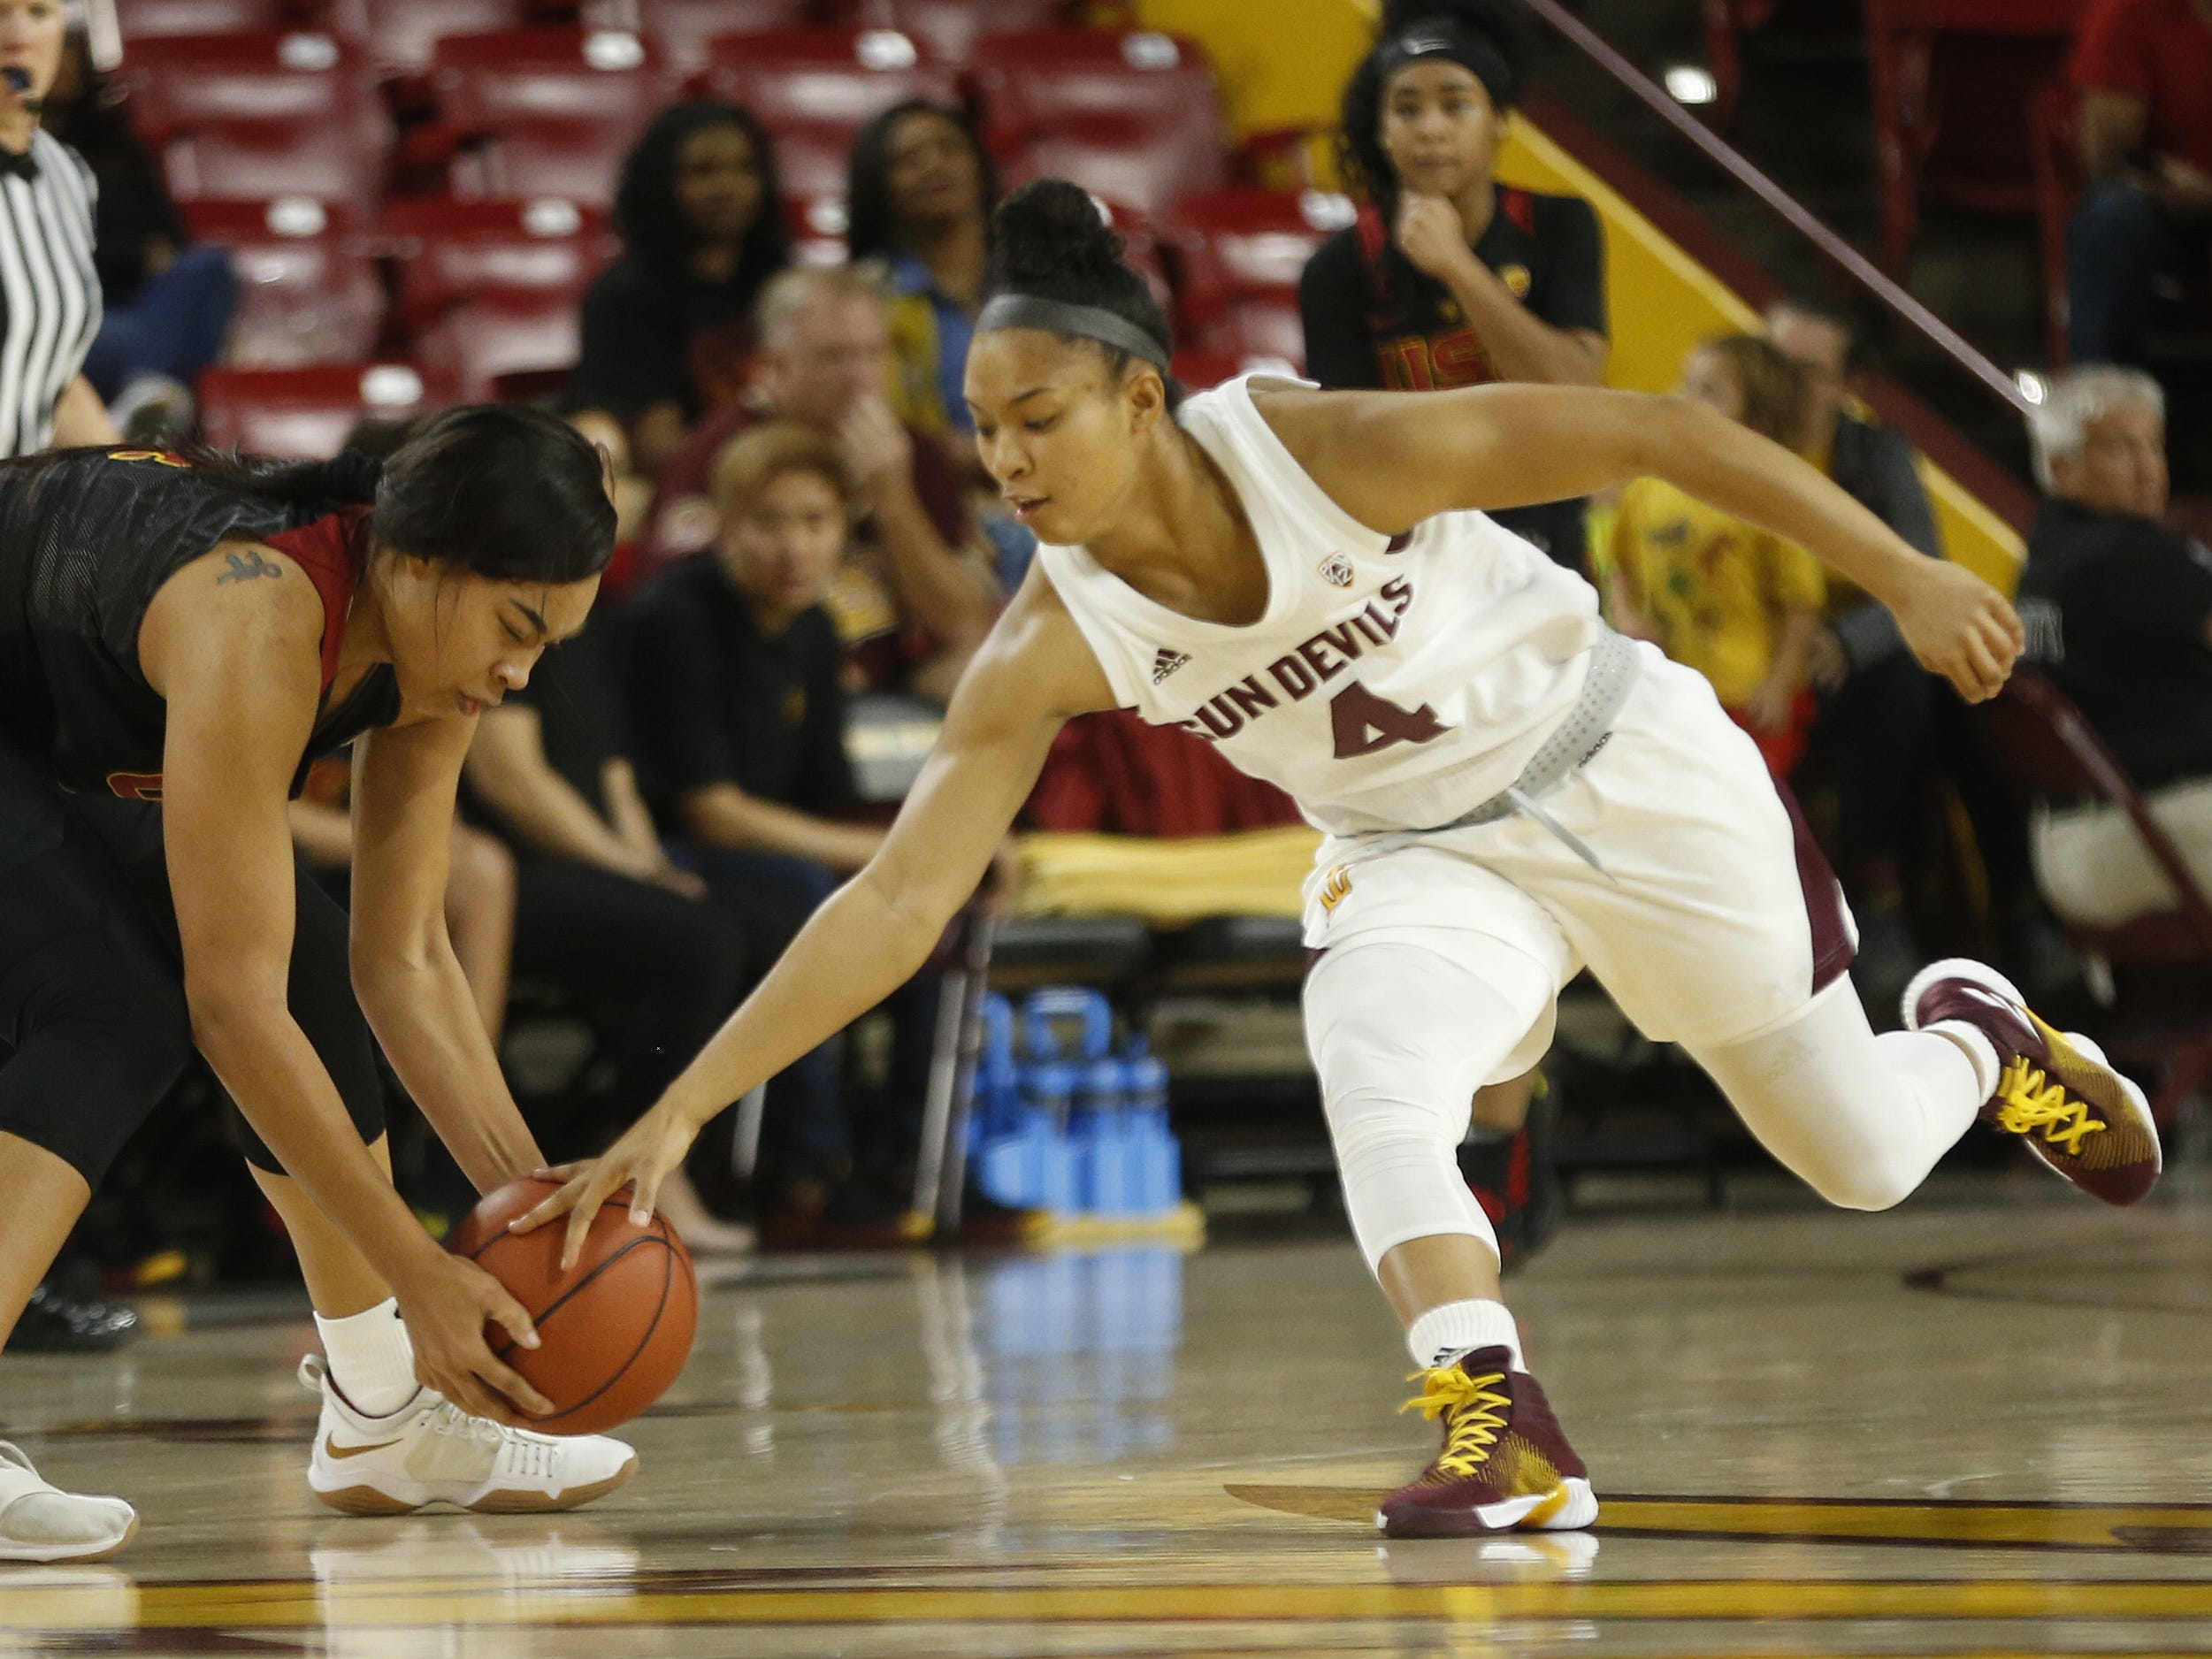 ASU's Kiara Russell (4) goes for a steal against USC's Mariya Moore (4) during the second half at Wells Fargo Arena in Tempe, Ariz. on January 27, 2019.